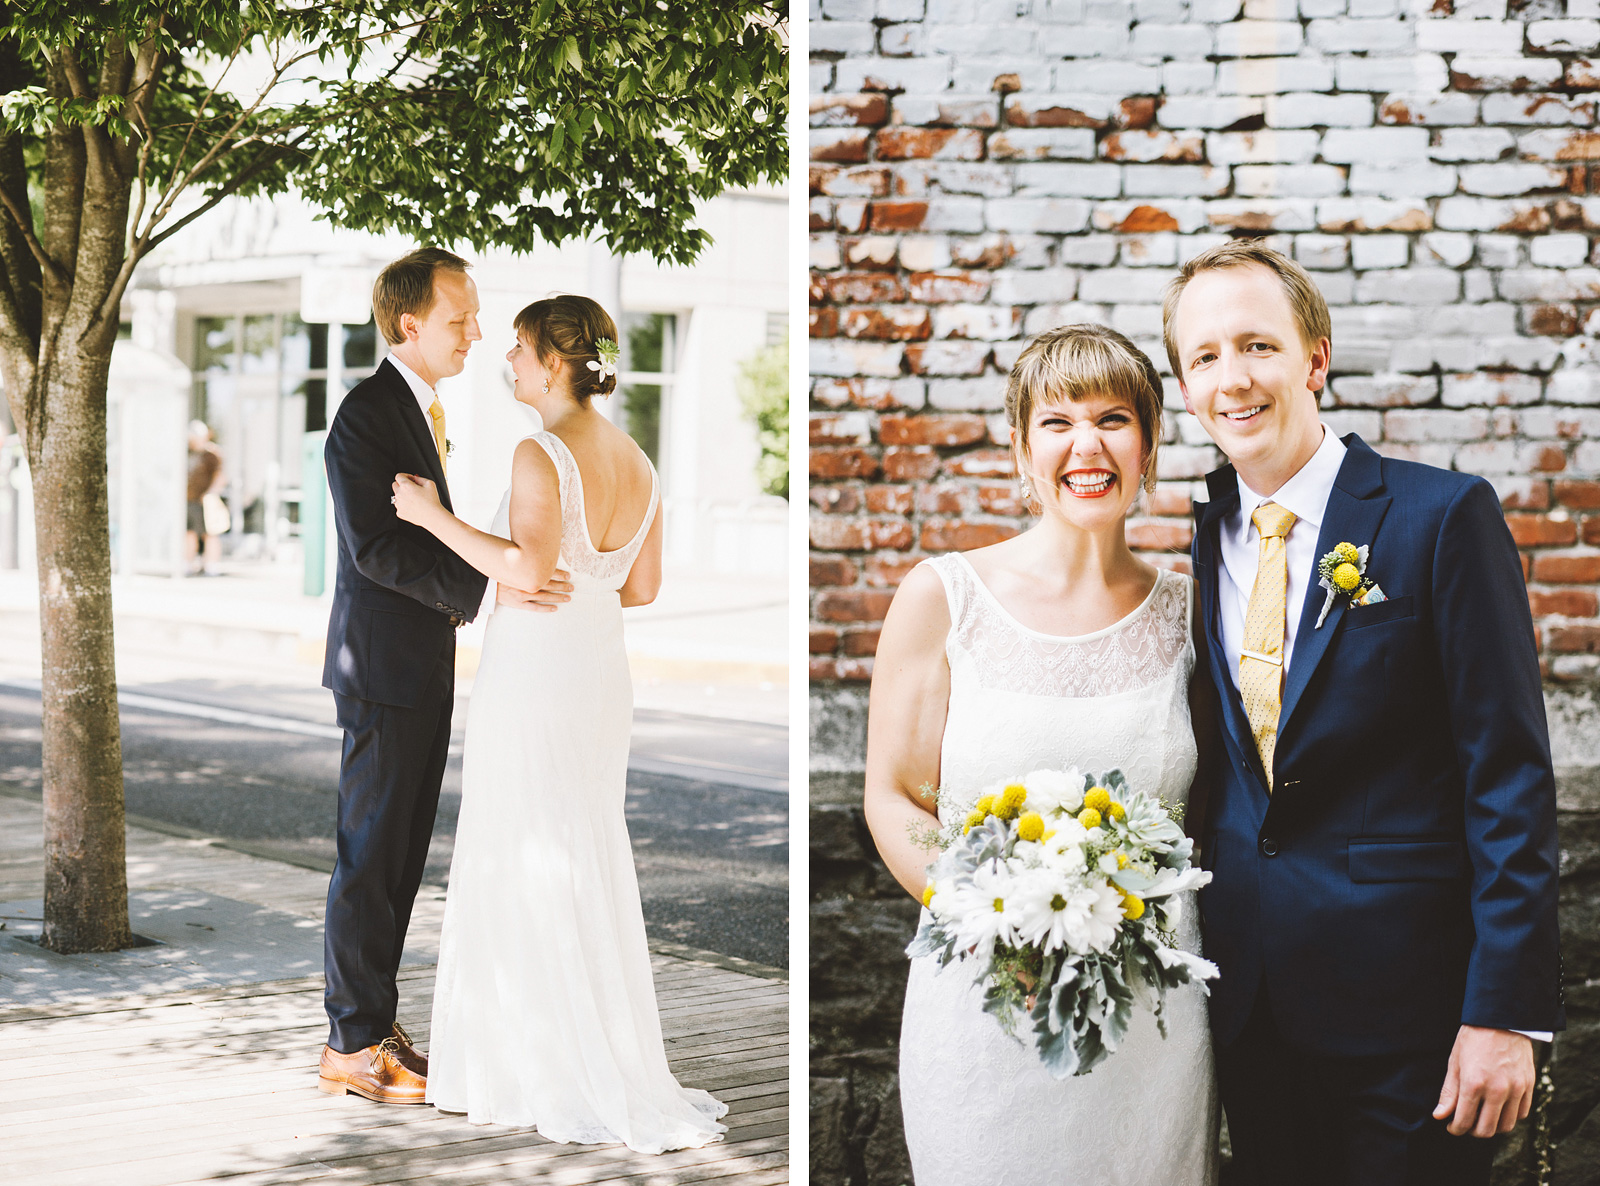 Portraits of Bride and Groom outside Tanner Springs Park | Ecotrust Rooftop Wedding in Downtown PDX